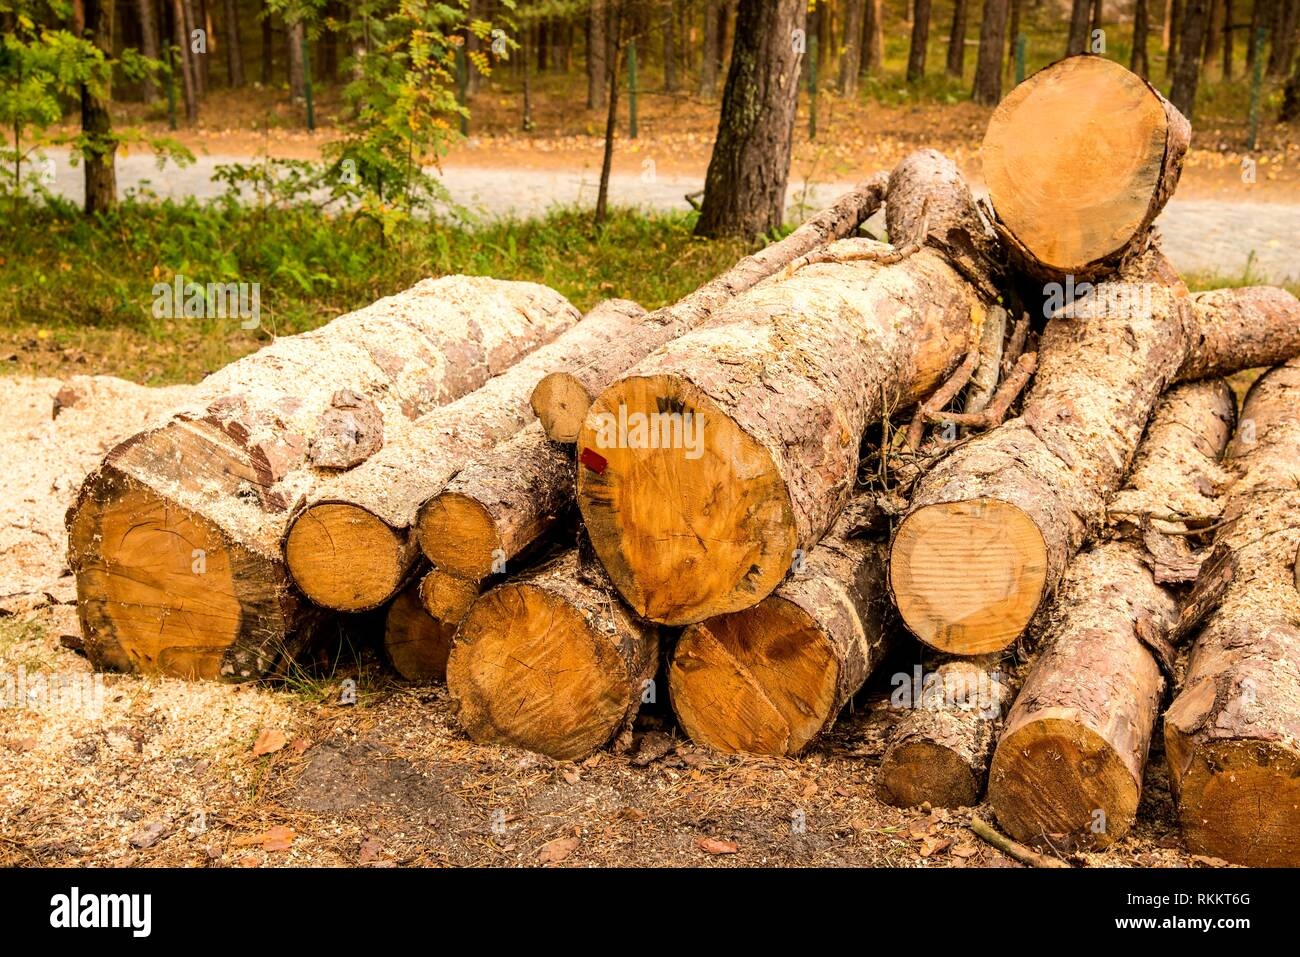 Timber wood, serrated in a forest. - Stock Image